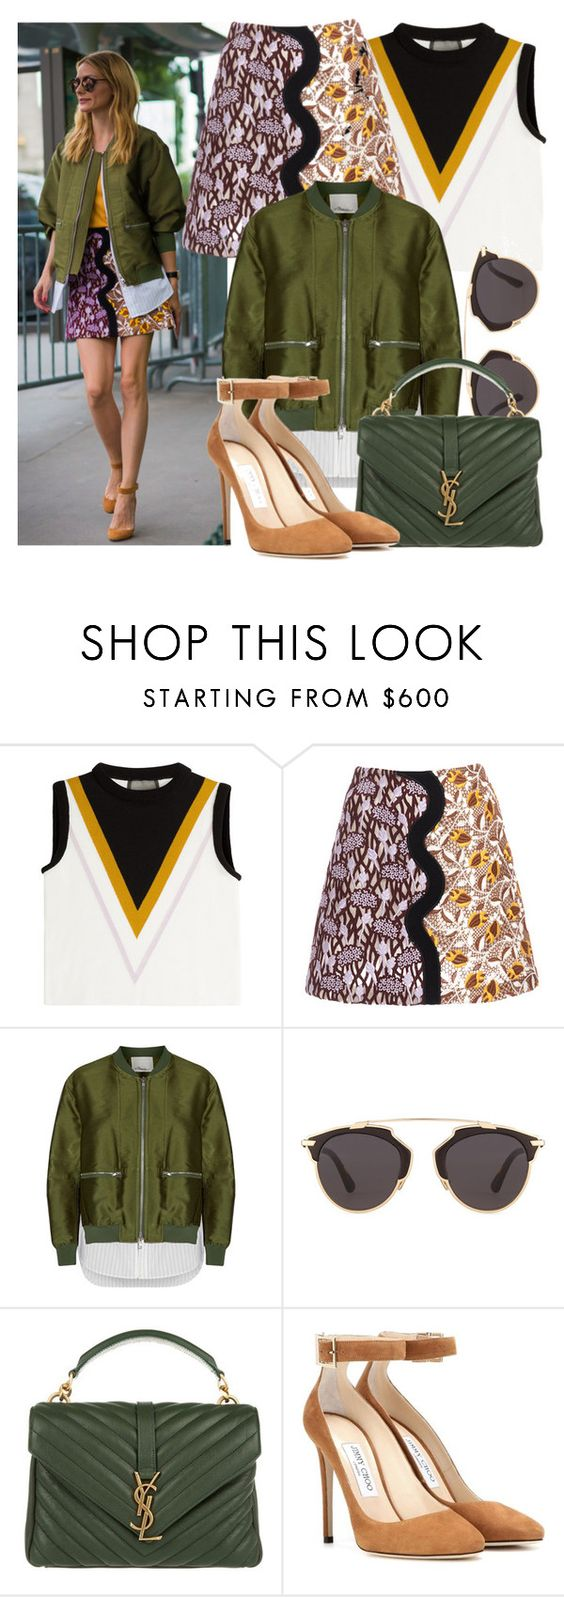 """""""Olivia Palermo"""" by justadream133 ❤ liked on Polyvore featuring Giambattista Valli, 3.1 Phillip Lim, Christian Dior, Yves Saint Laurent, Jimmy Choo, StreetStyle and OliviaPalermo"""